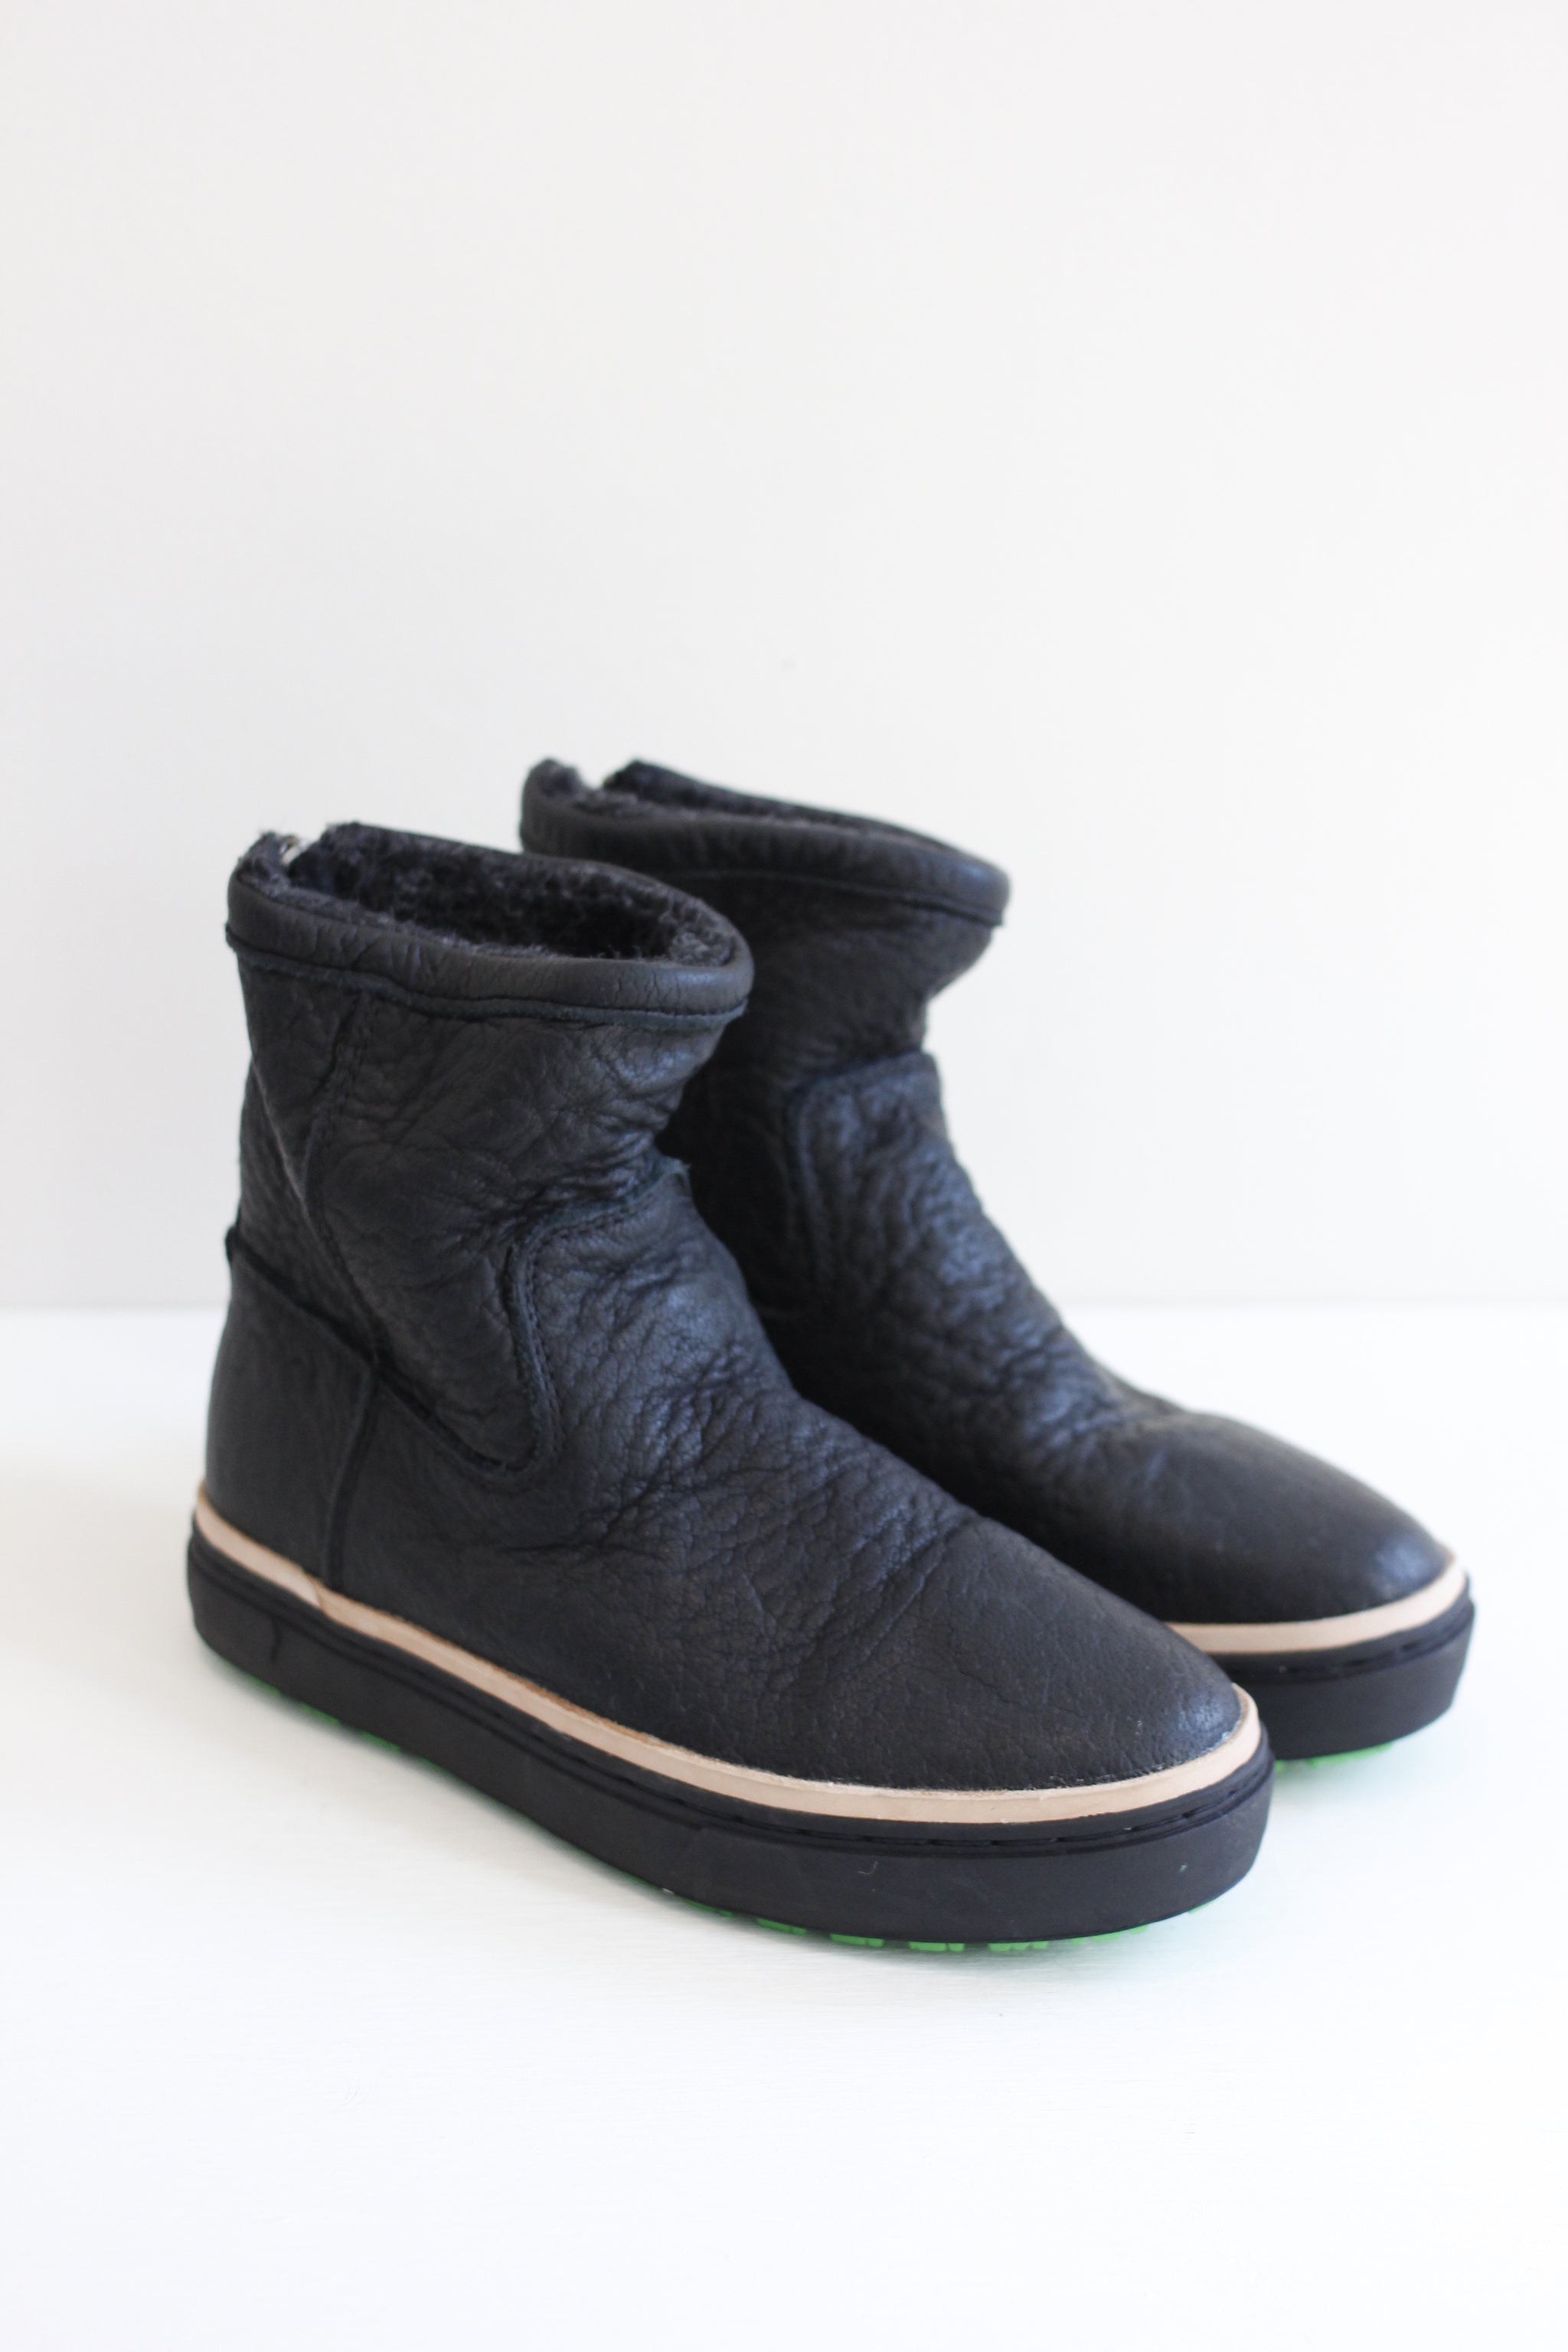 Satorisan black leather boot